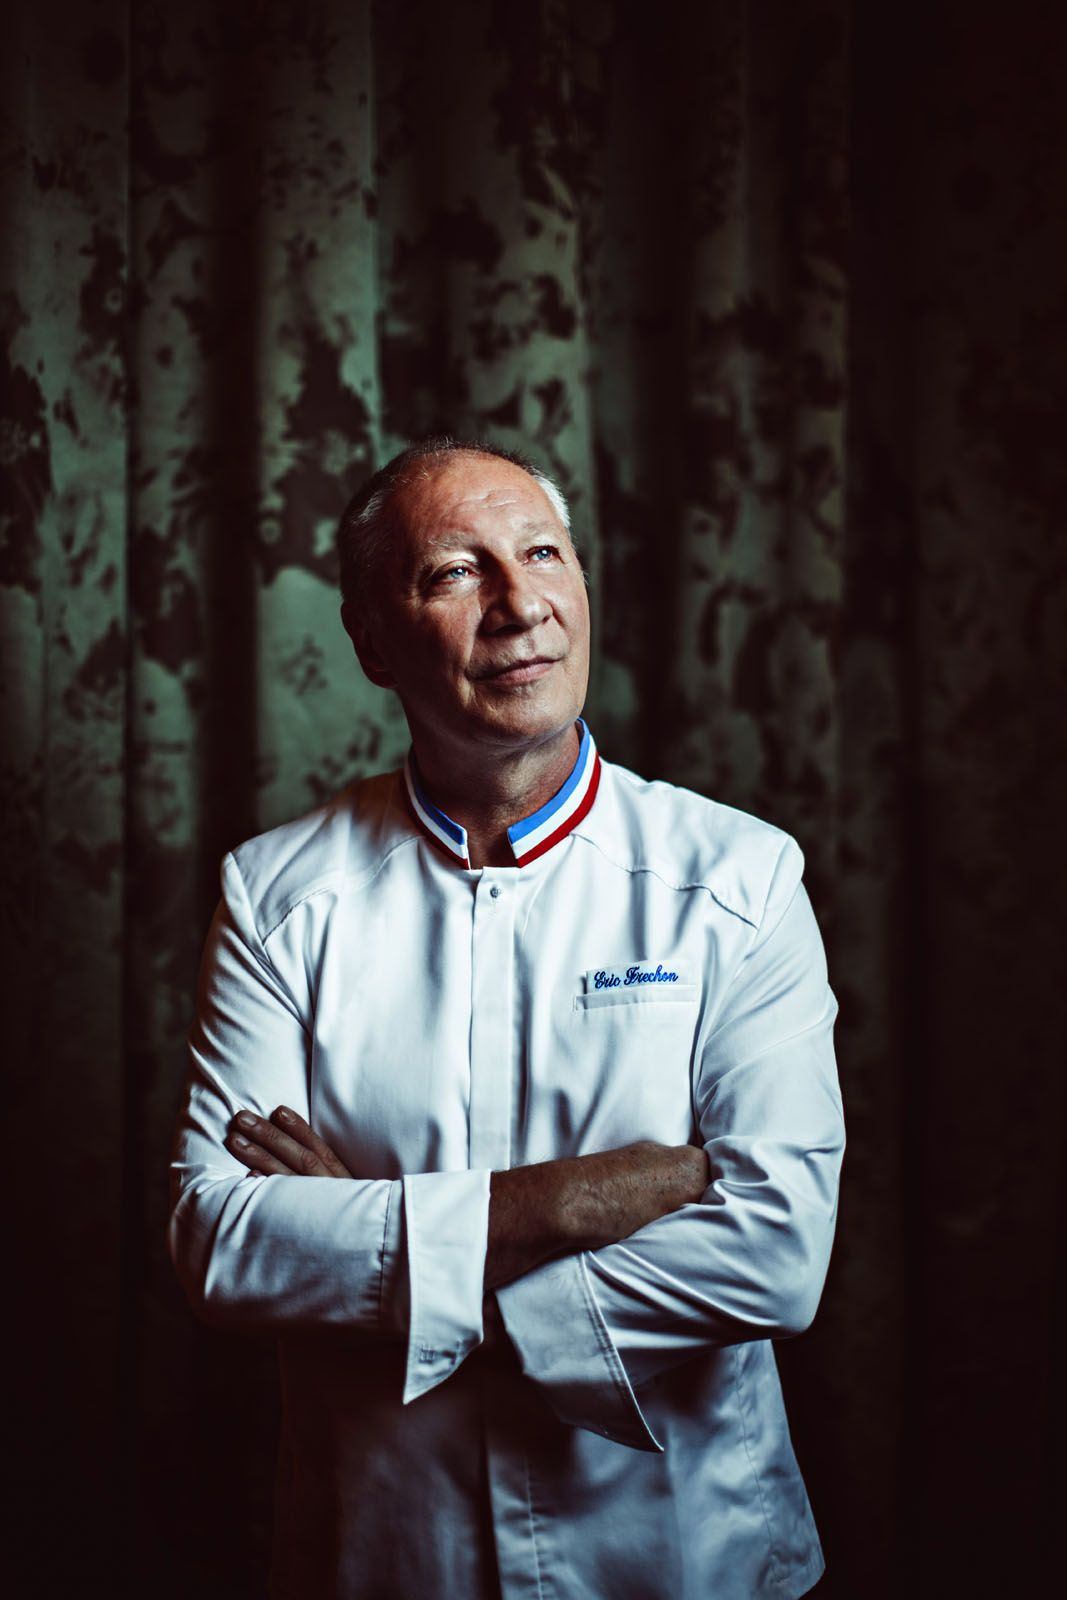 French Chef Éric Fréchon On Keeping The Magic Alive After 20 Years At Le Bristol Paris